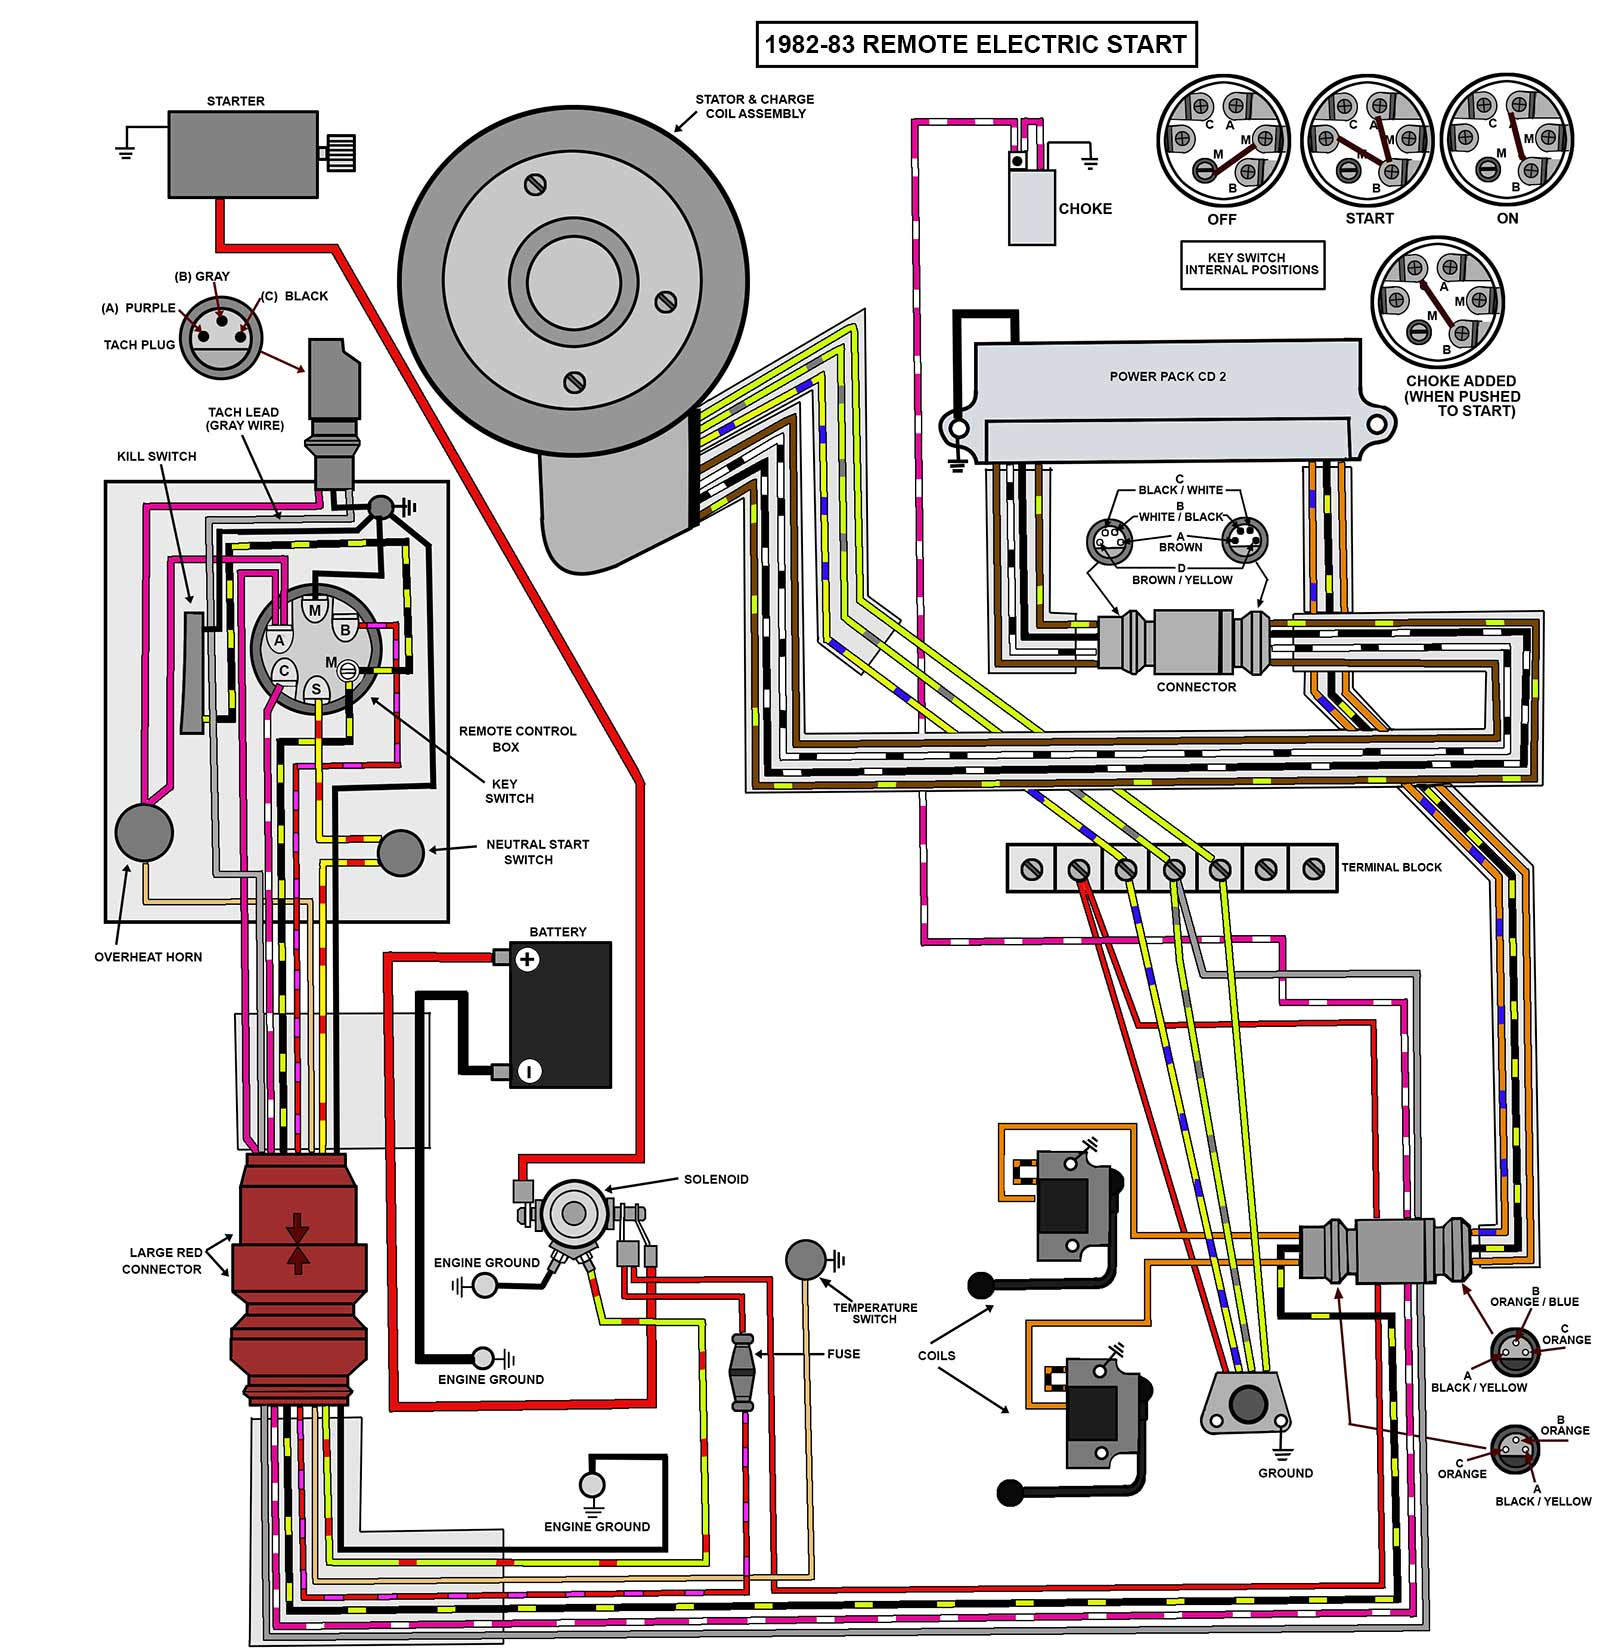 25_35_82 83_elec remote mastertech marine evinrude johnson outboard wiring diagrams wiring diagram for 30 hp johnson motor at mifinder.co